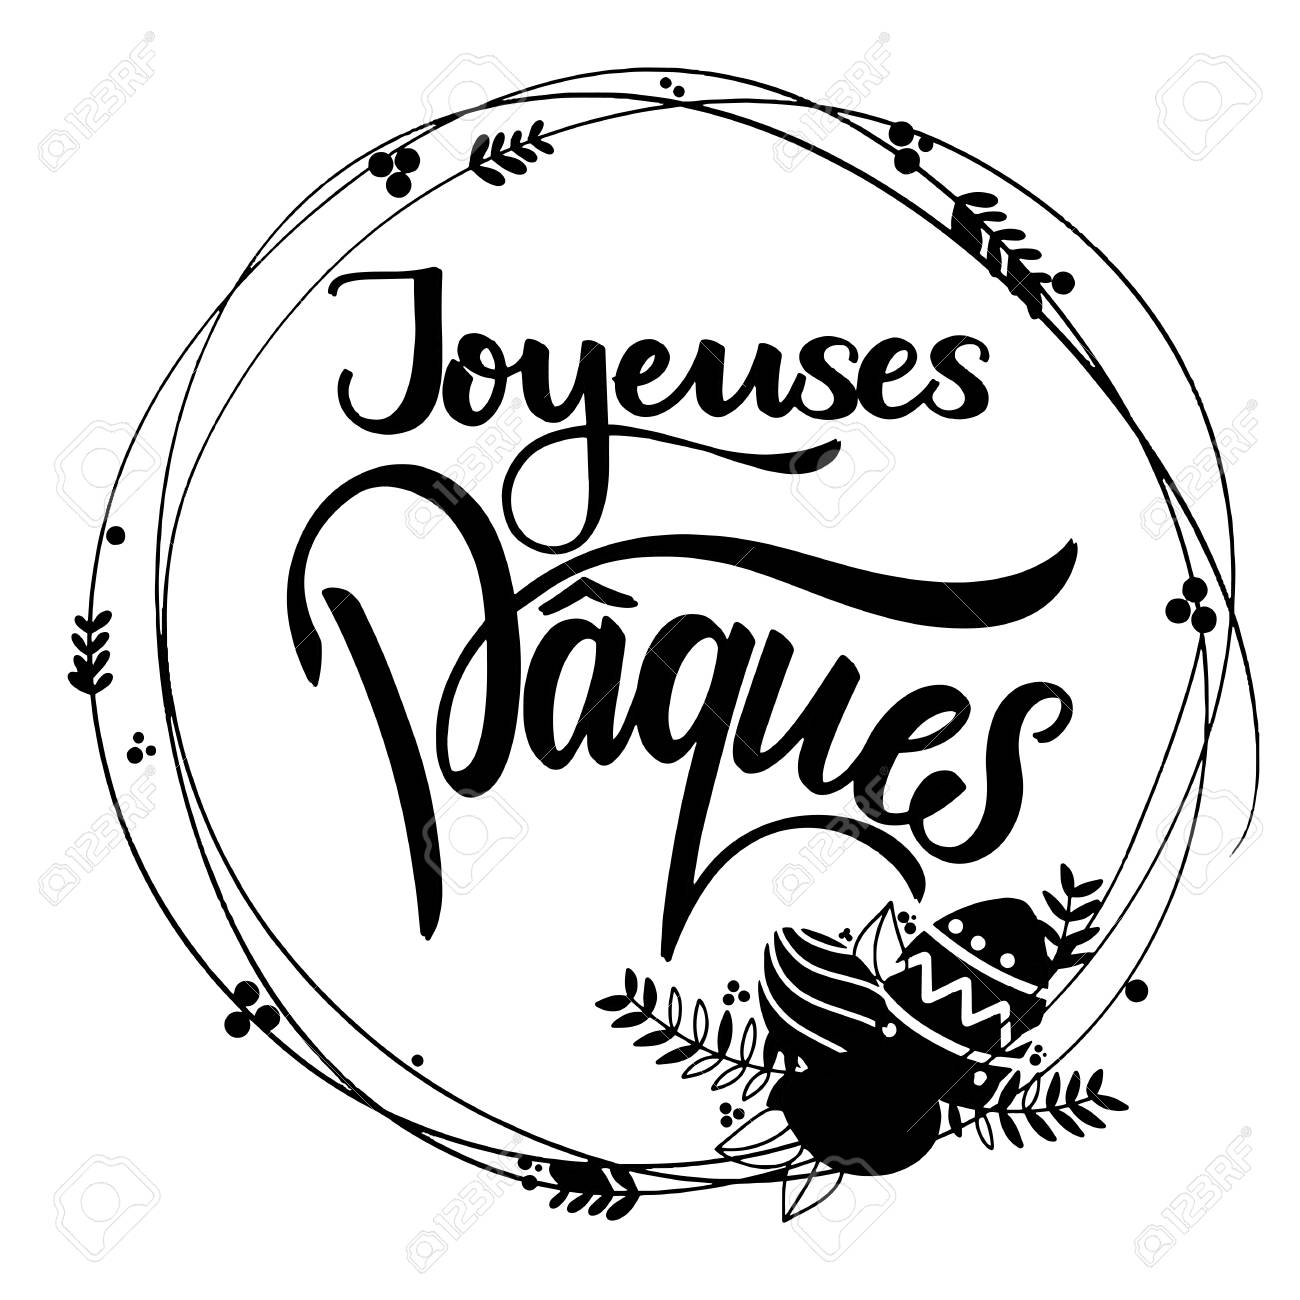 Joyeuses Paques Lettering Happy Easter Lettering In French